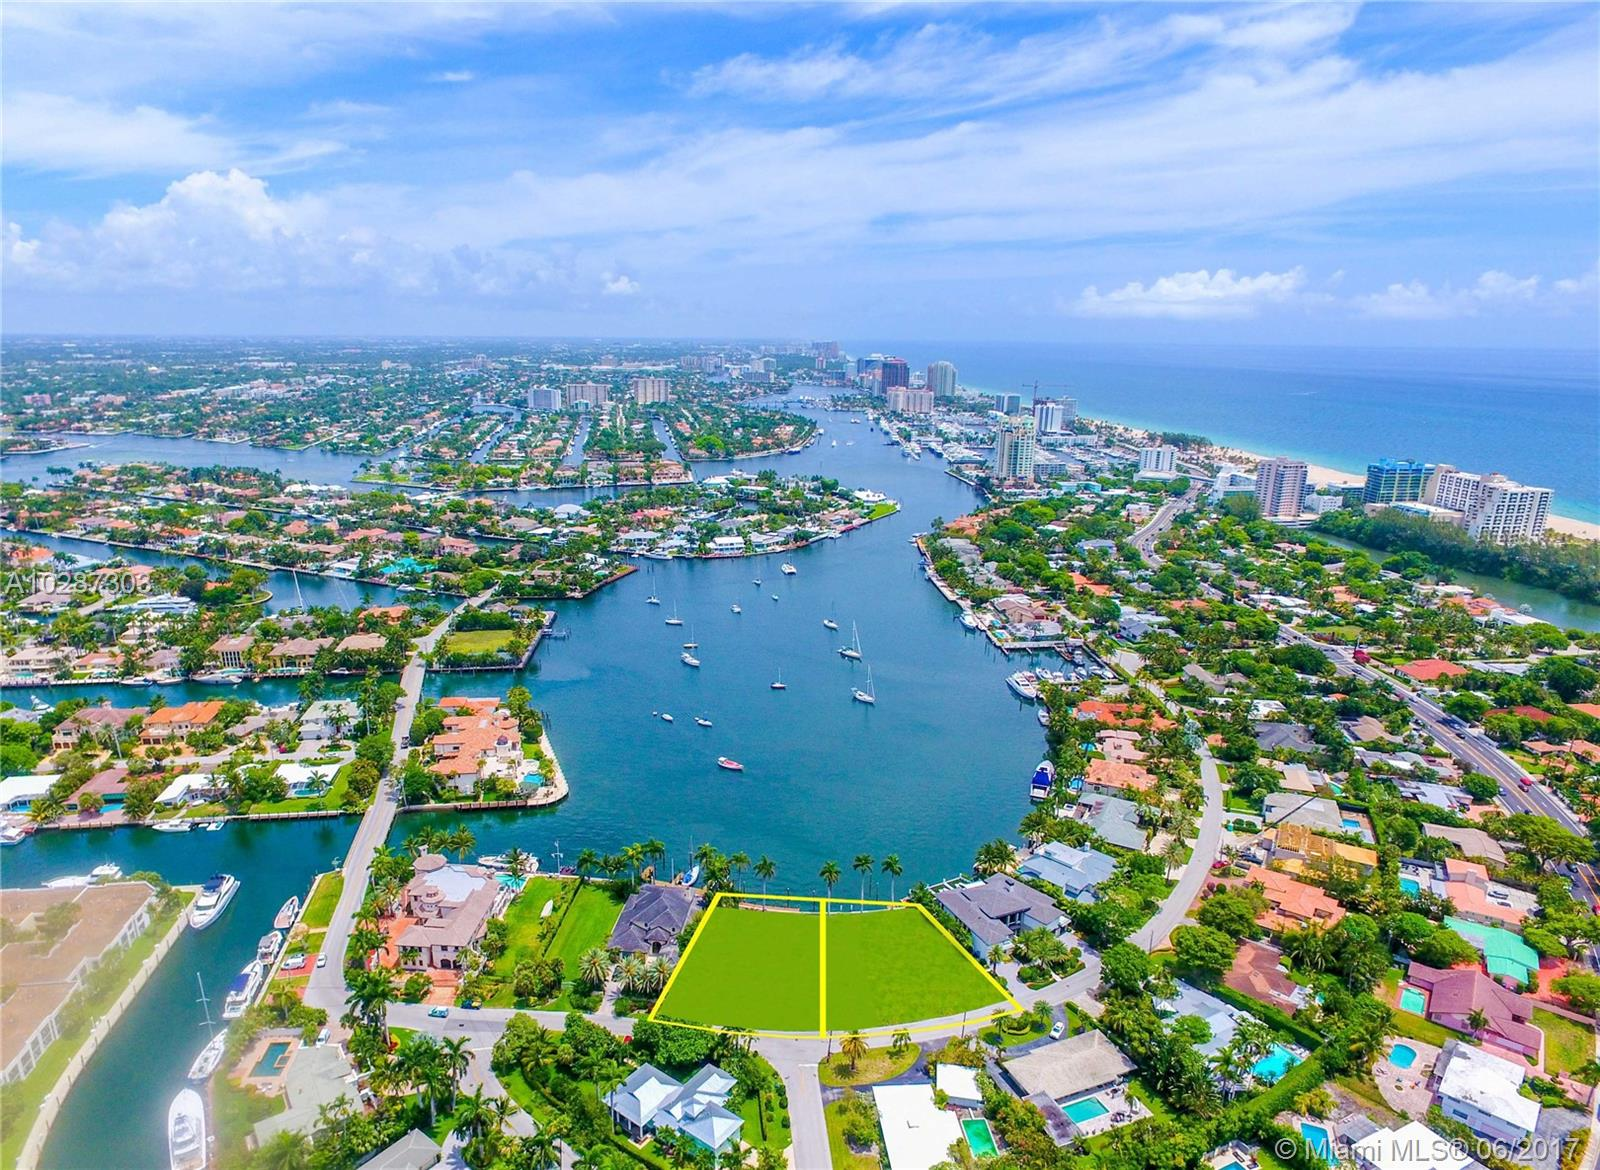 1627 E Lake Dr Fort Lauderdale Fl 33316 Aria Luxe Realty